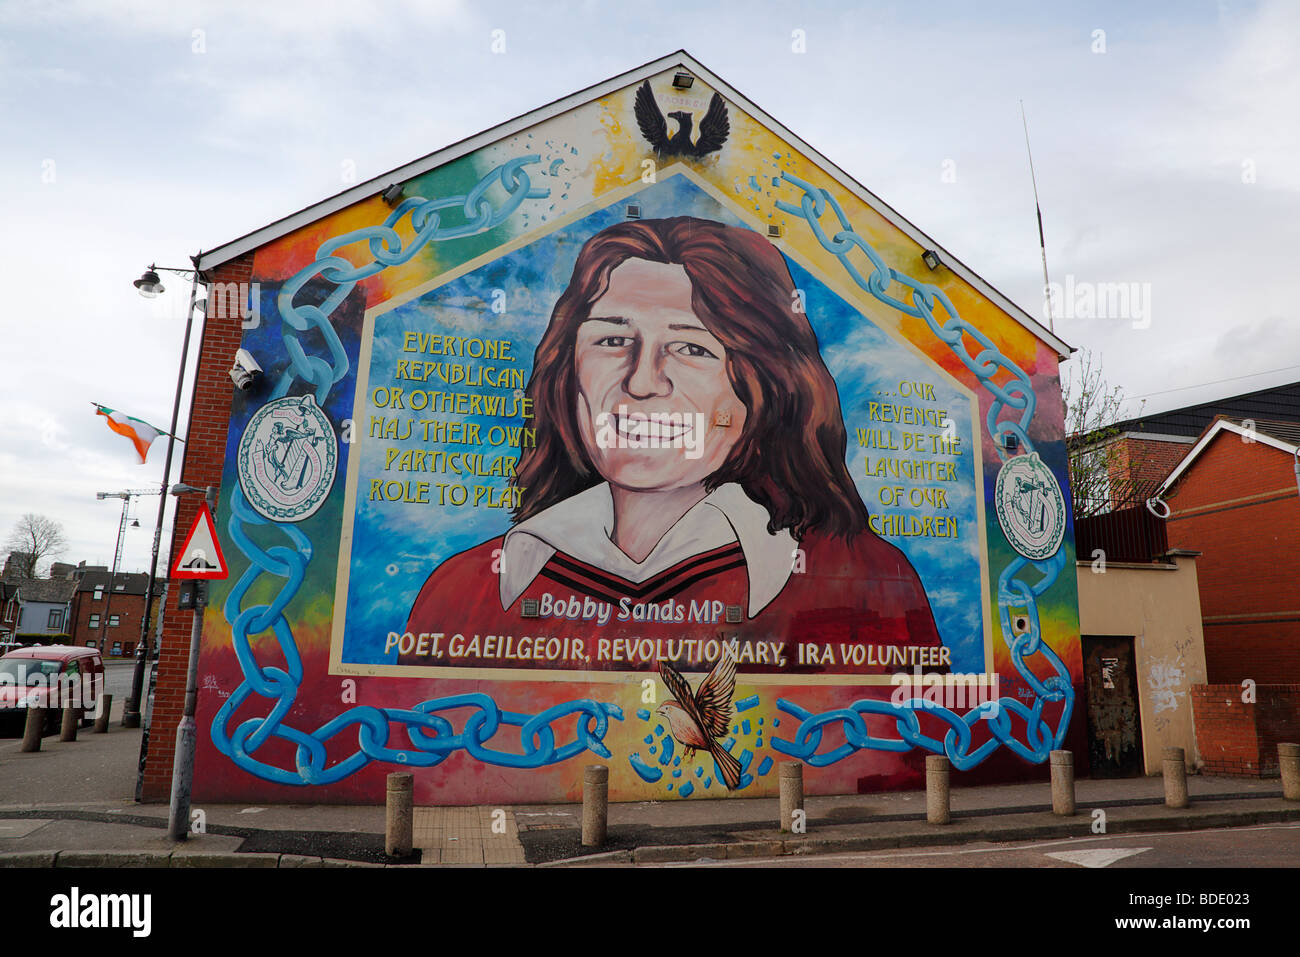 IRELAND, North, Belfast, West, Falls Road, Mural of Bobby Sands on the gable end of the Sinn Fein headquarters - Stock Image